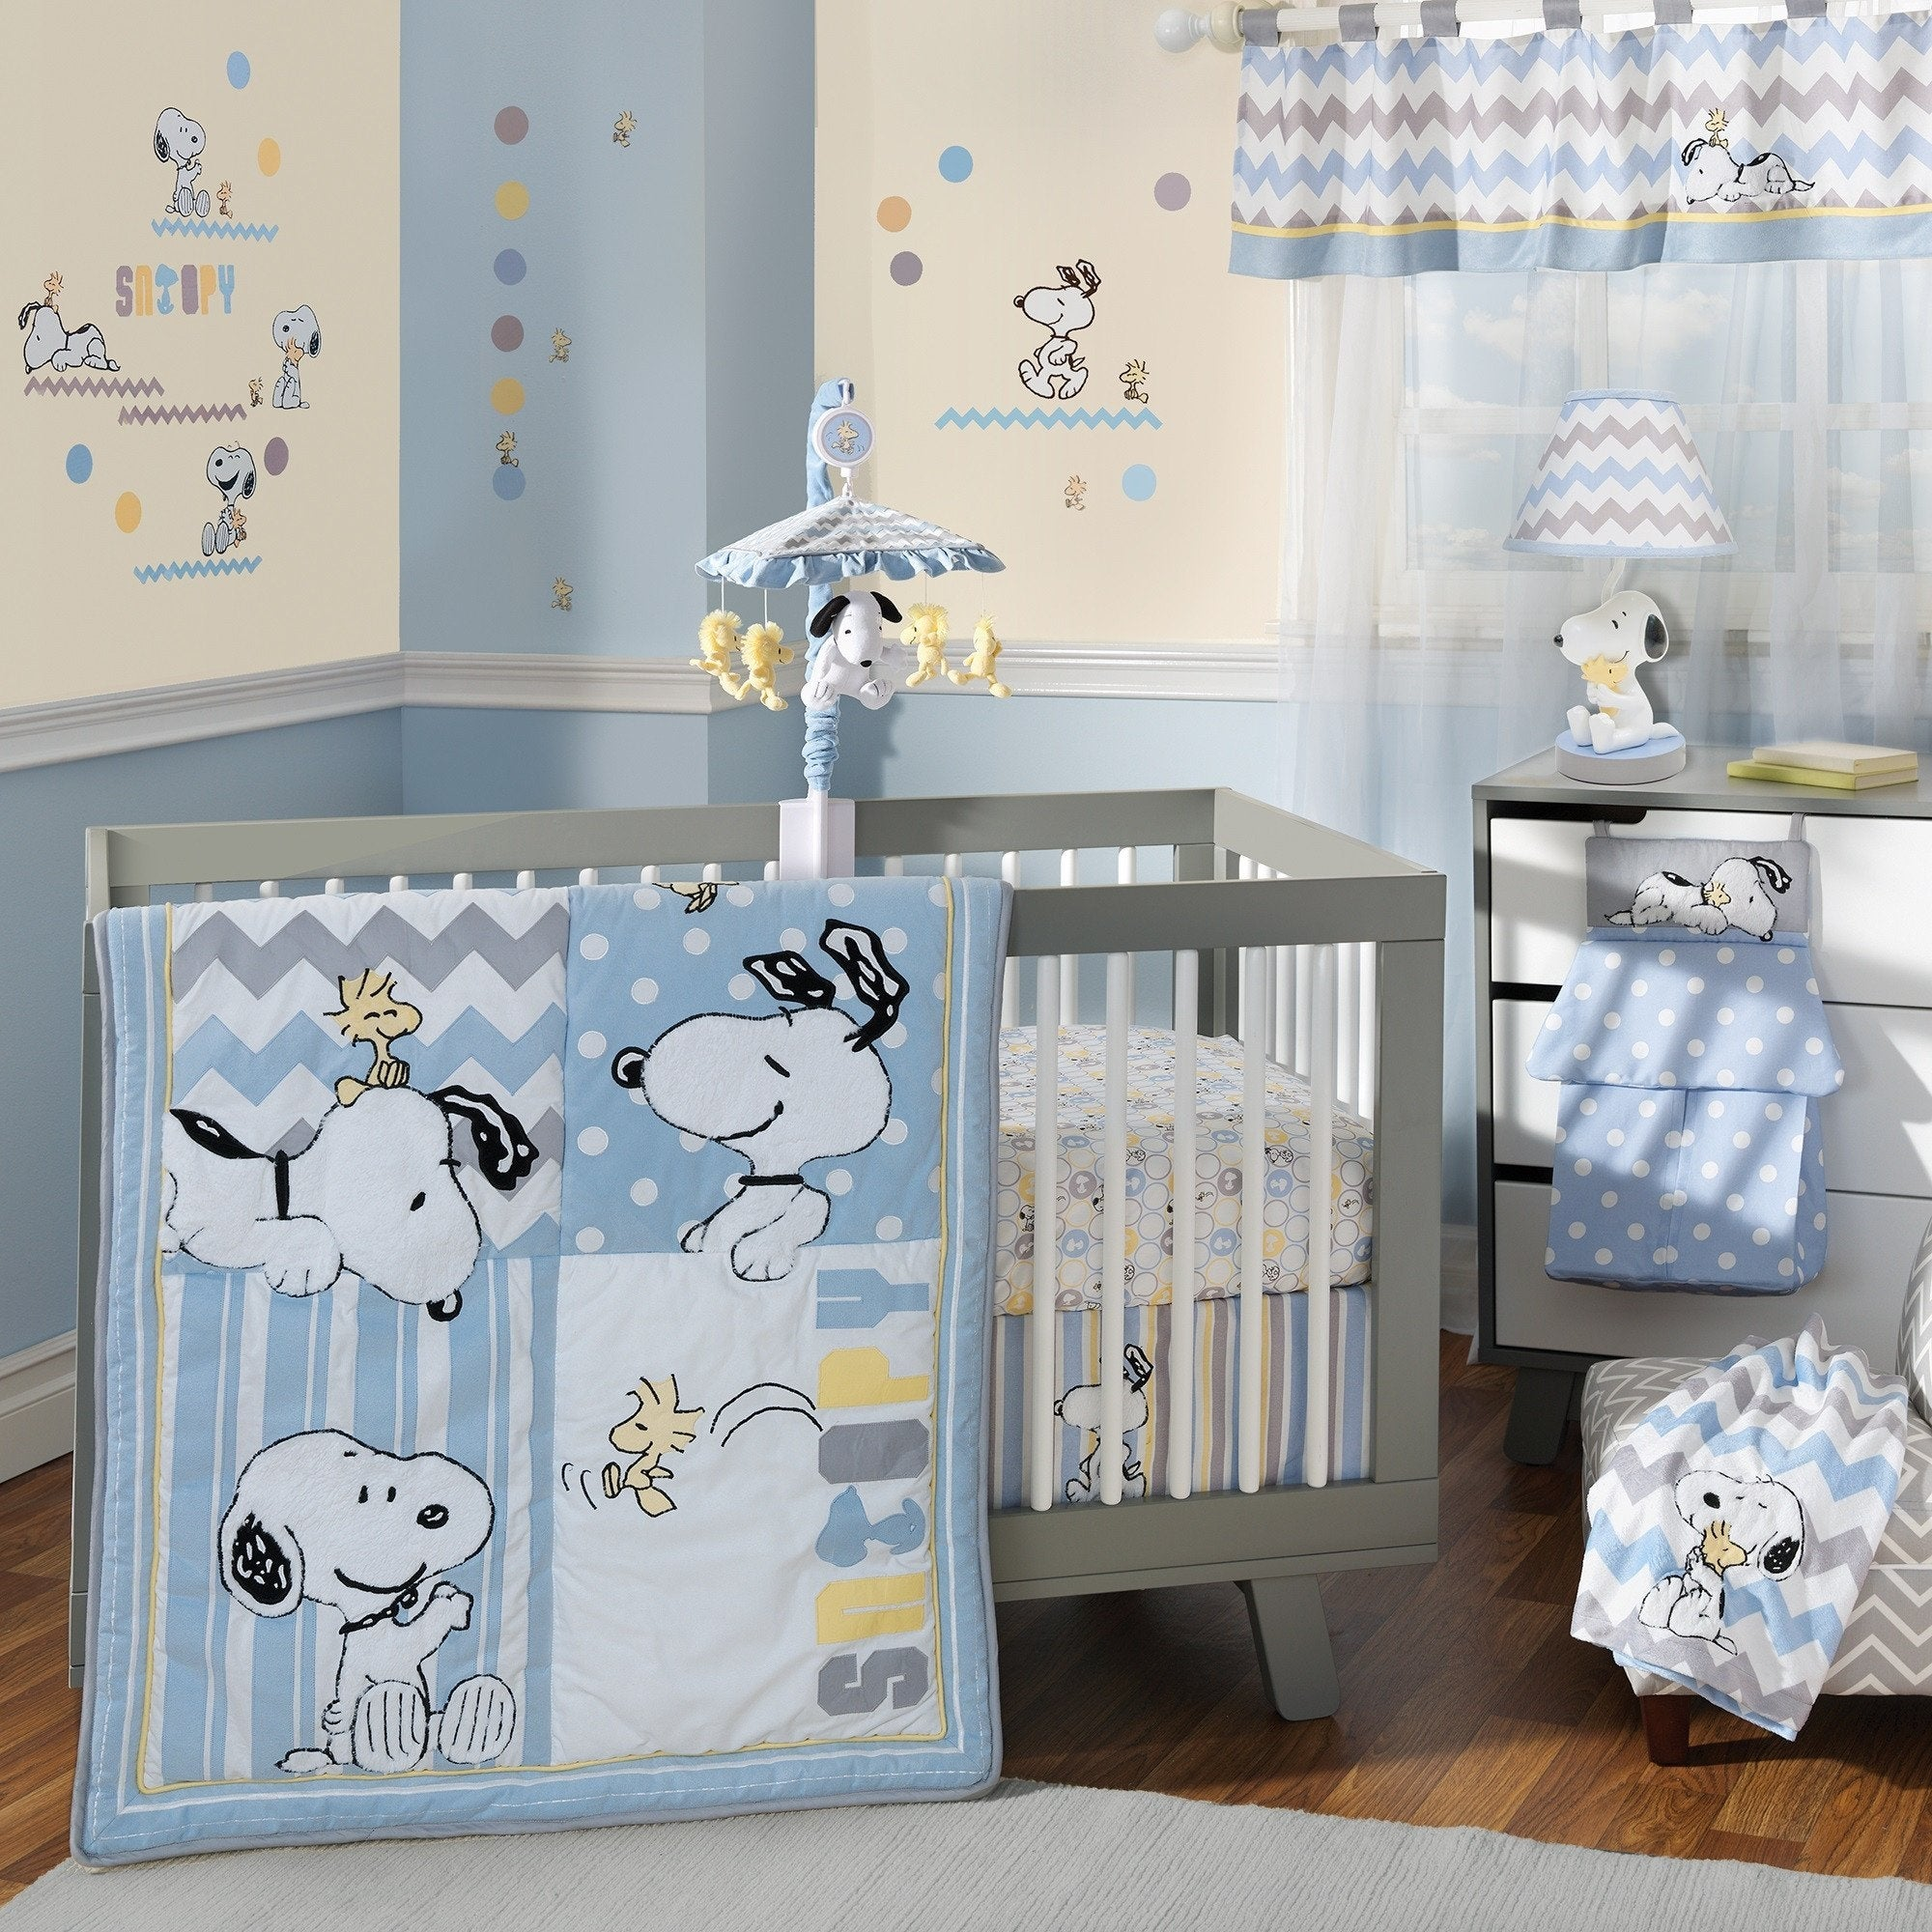 Lambs Ivy My Little Snoopy Blue White Gray Yellow Nursery 4 Piece Baby Crib Bedding Set